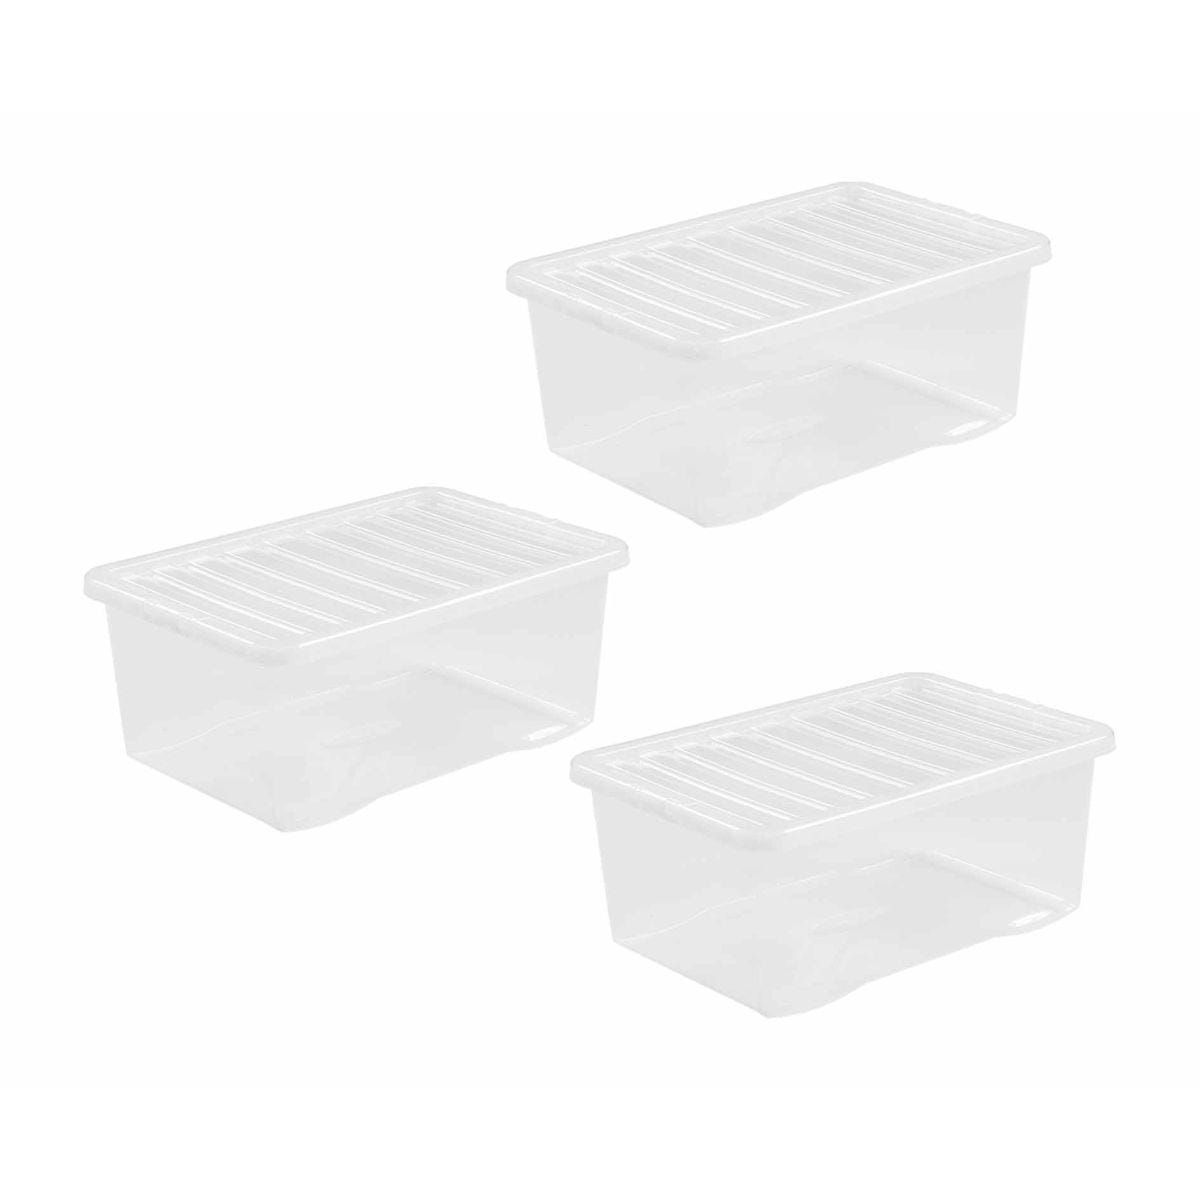 Wham Boxes 45 Litre Pack of 3 Clear Clear